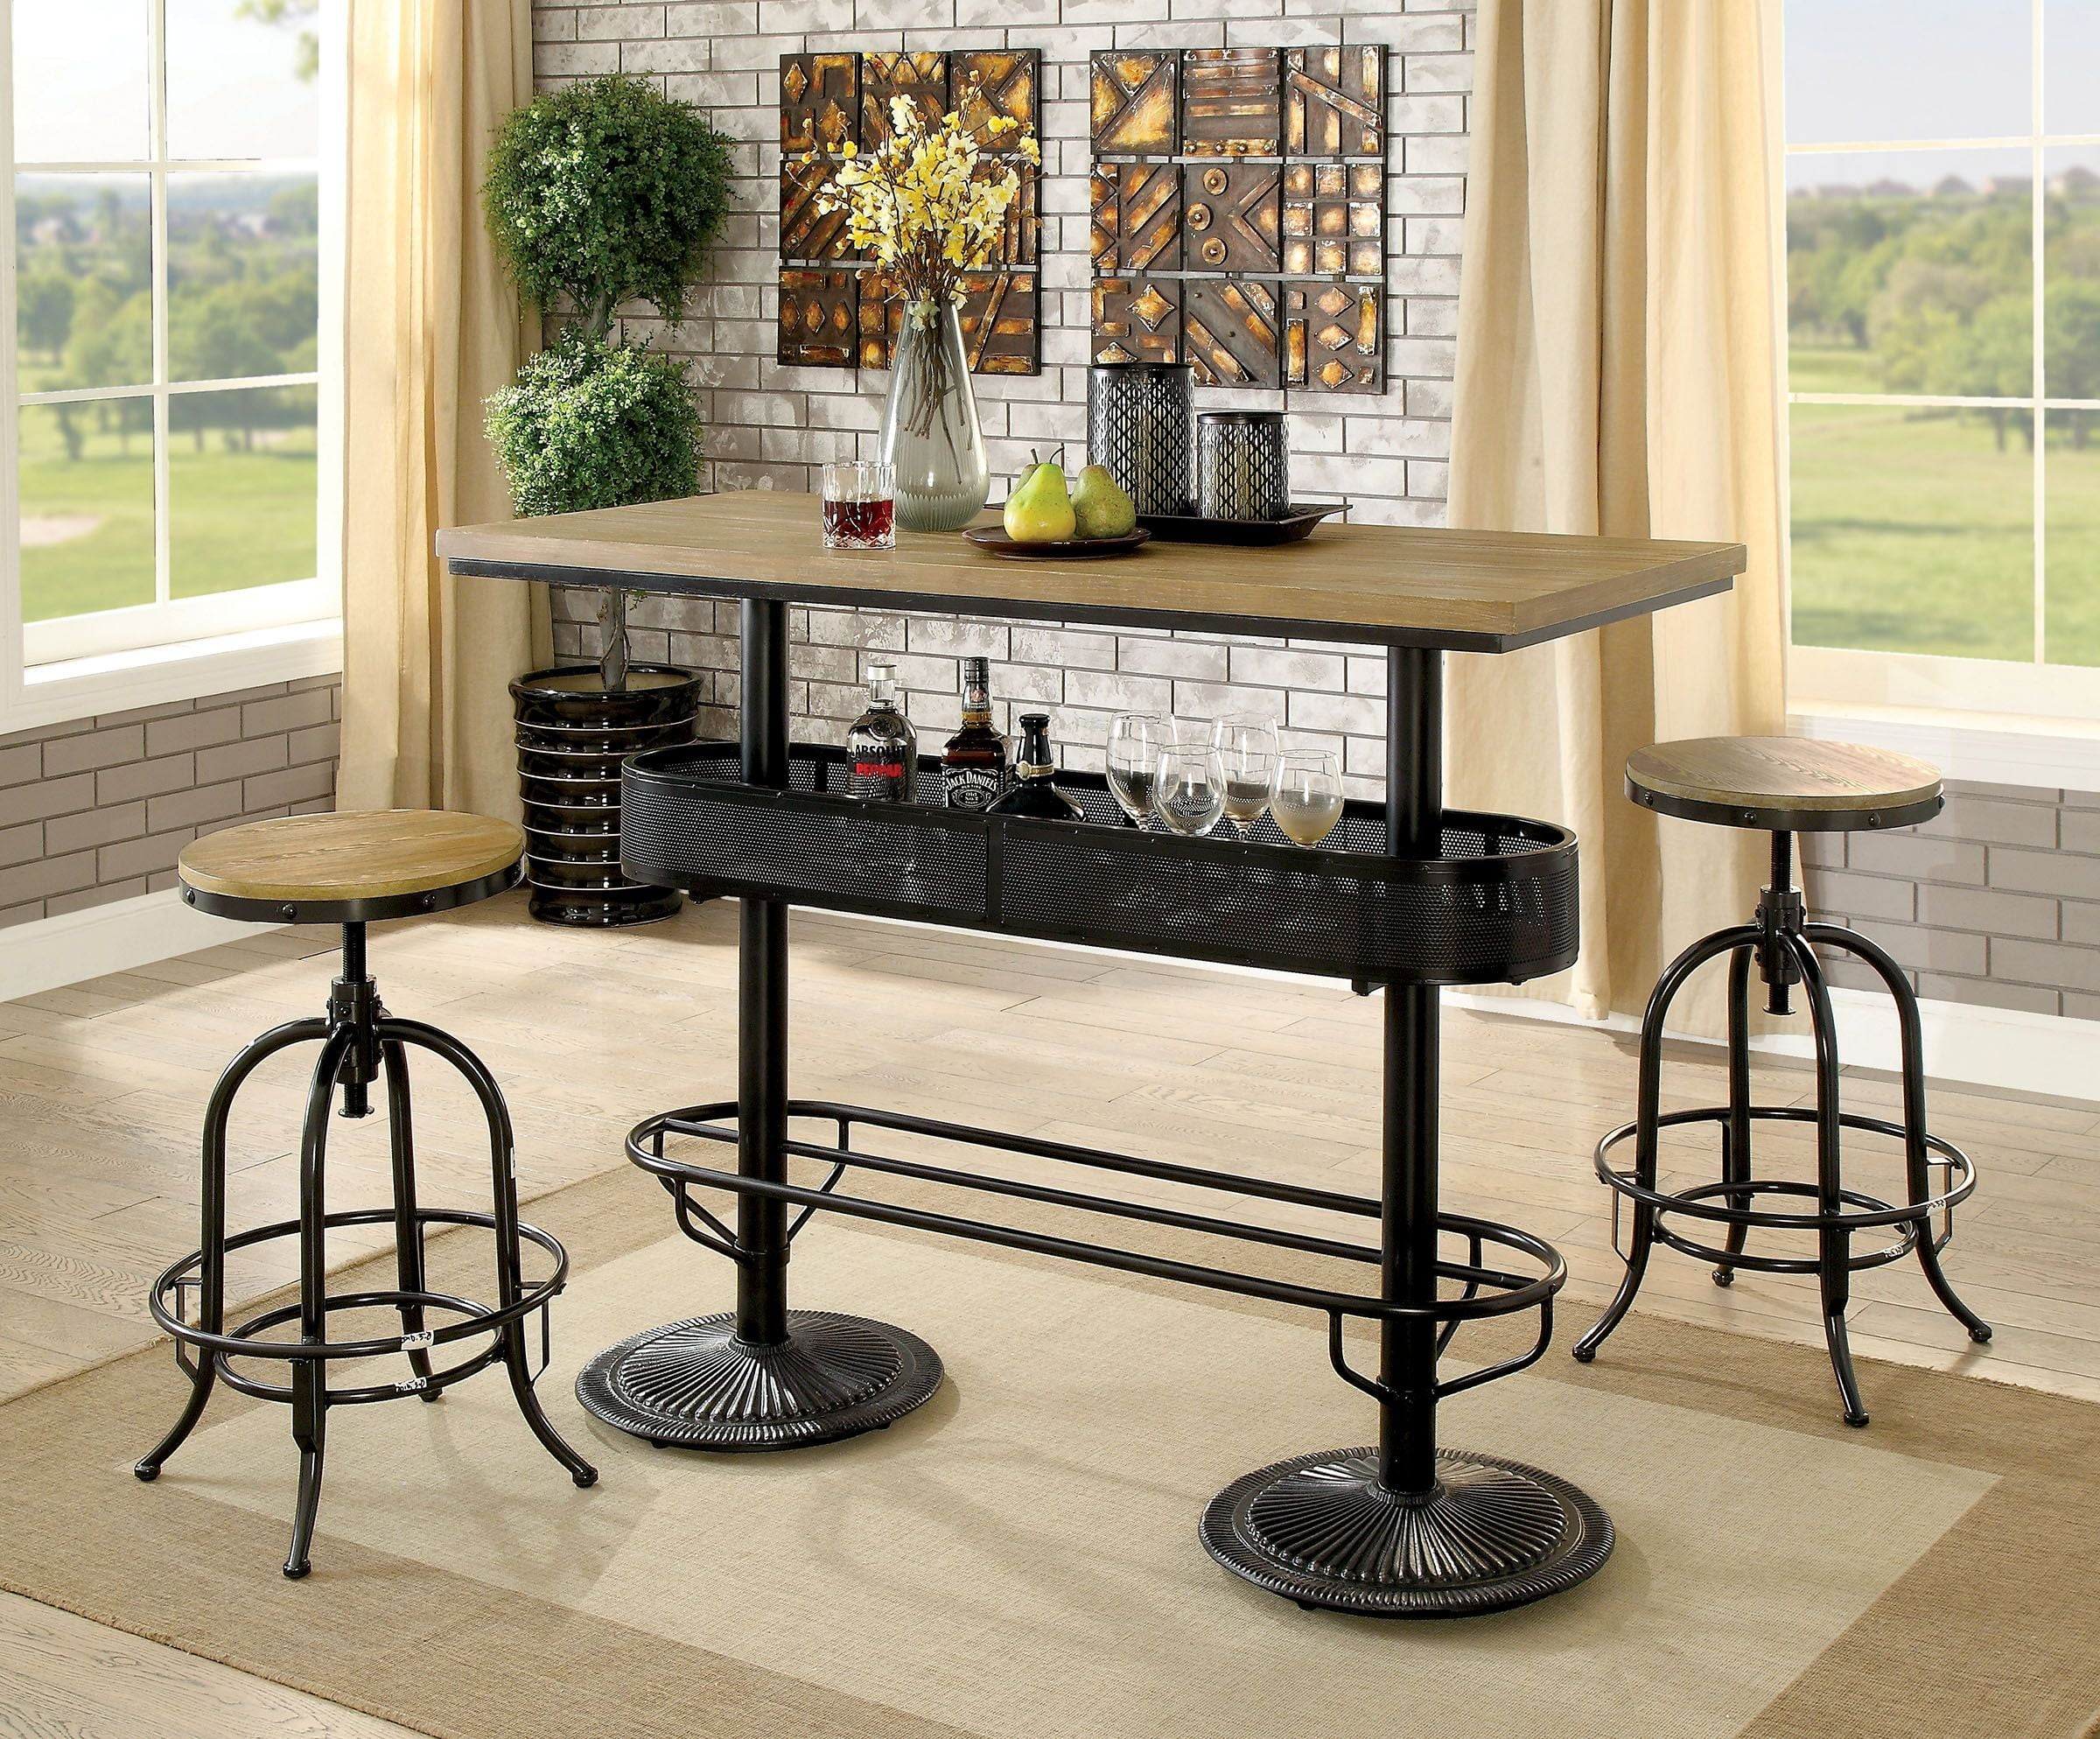 Bar Table Set – Summervilleaugusta For Most Up To Date Crownover 3 Piece Bar Table Sets (Image 4 of 20)